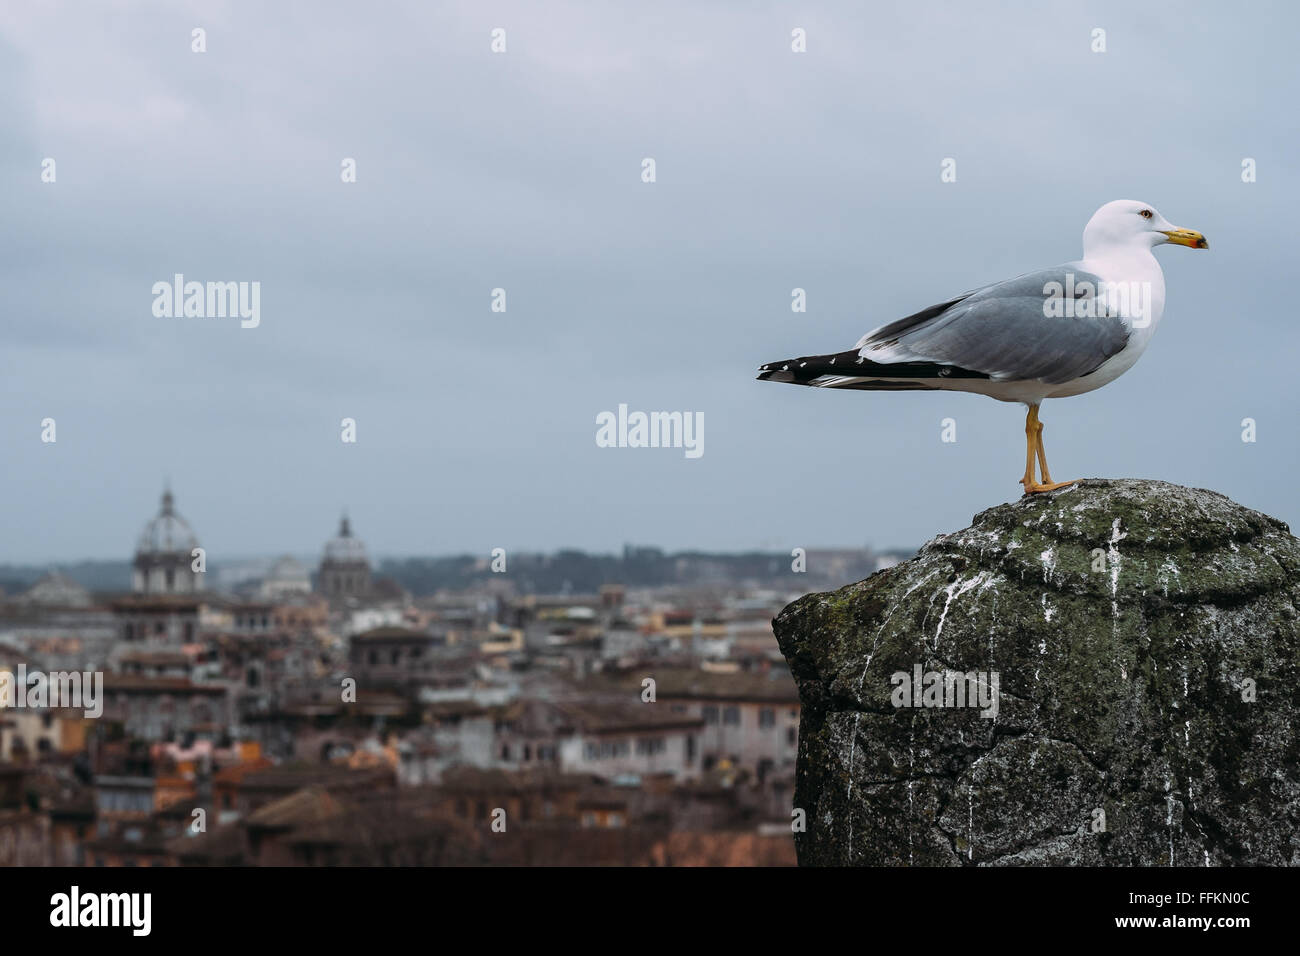 A seagull in front of a view of an artistically blurred view of Rome, Italy on a very cloudy day. - Stock Image